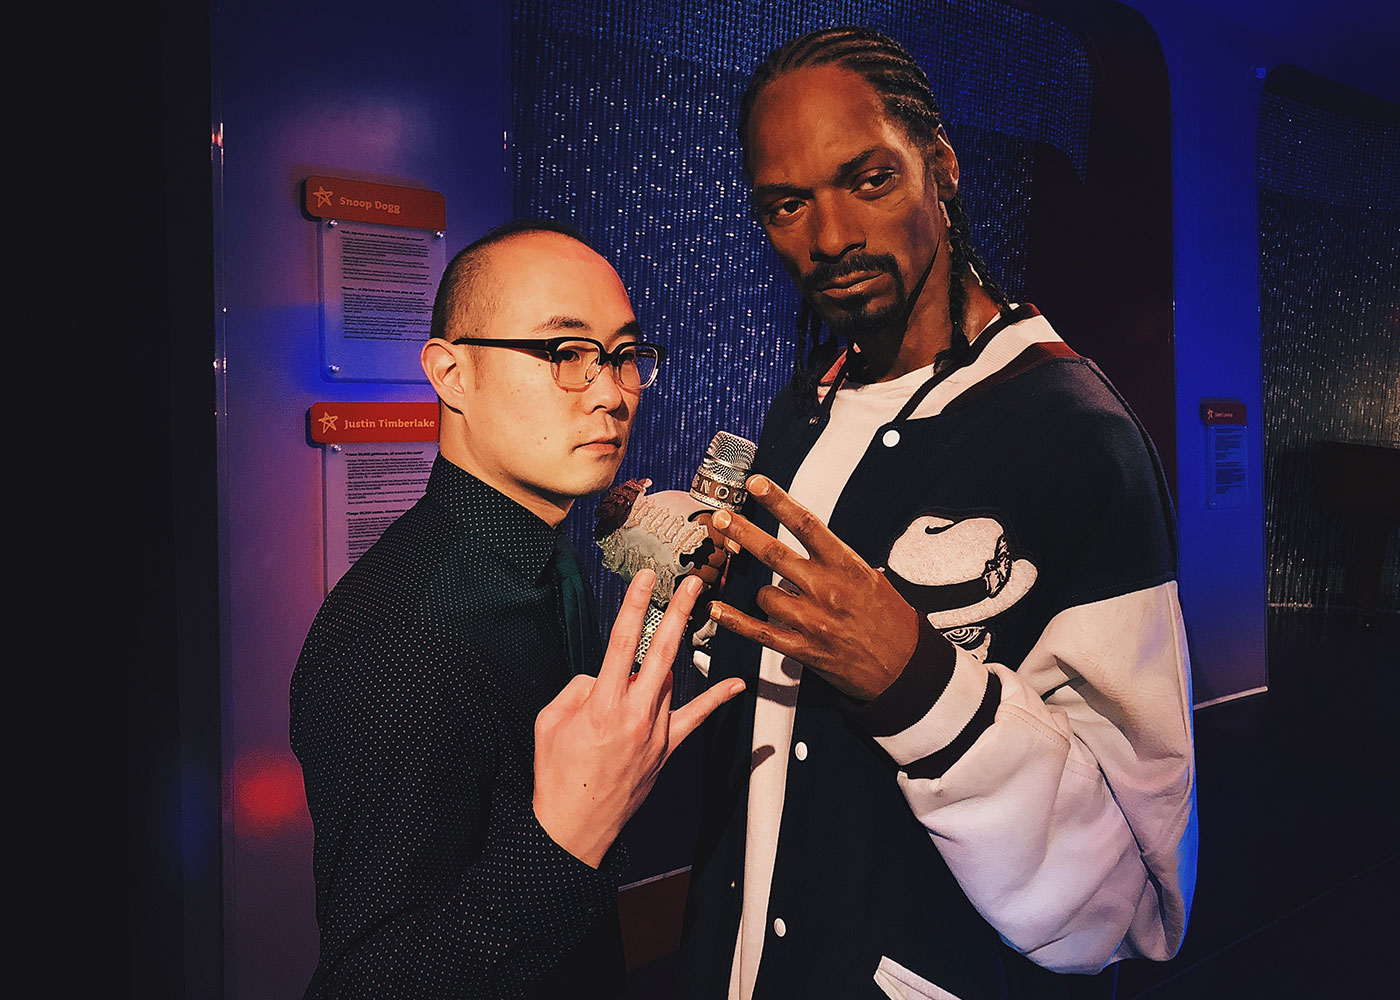 Jonathan and Snoop Dogg